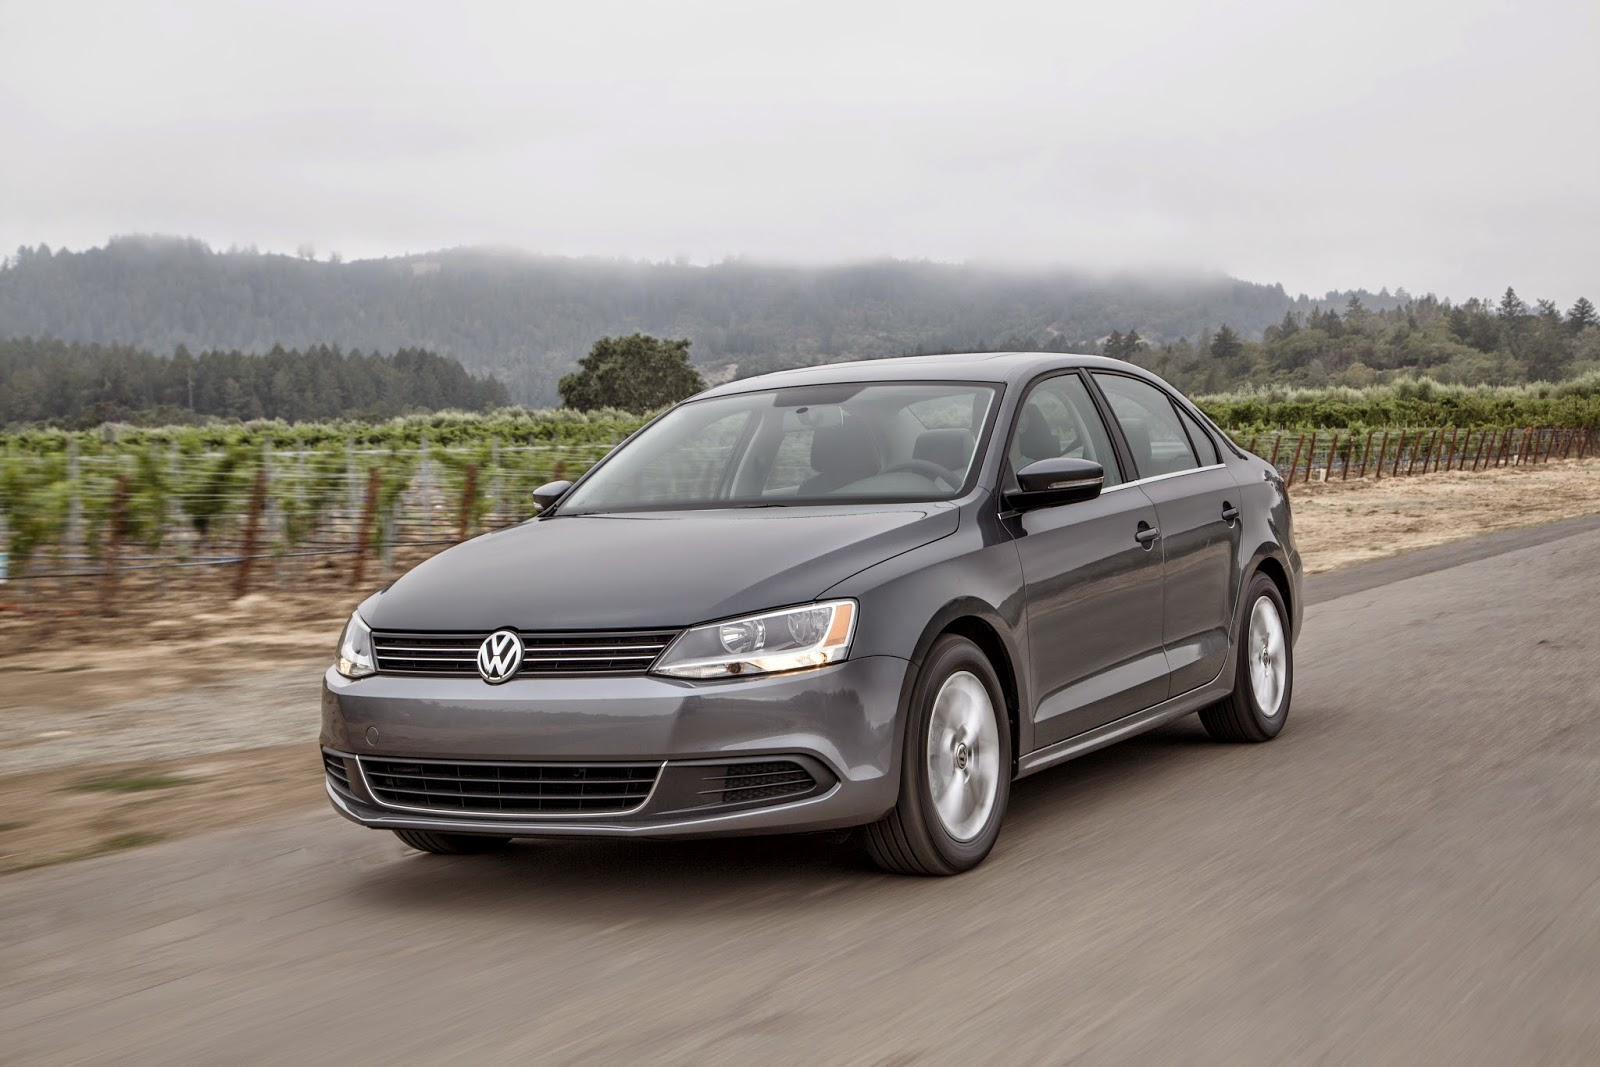 VW Jetta surprises with performance, agility